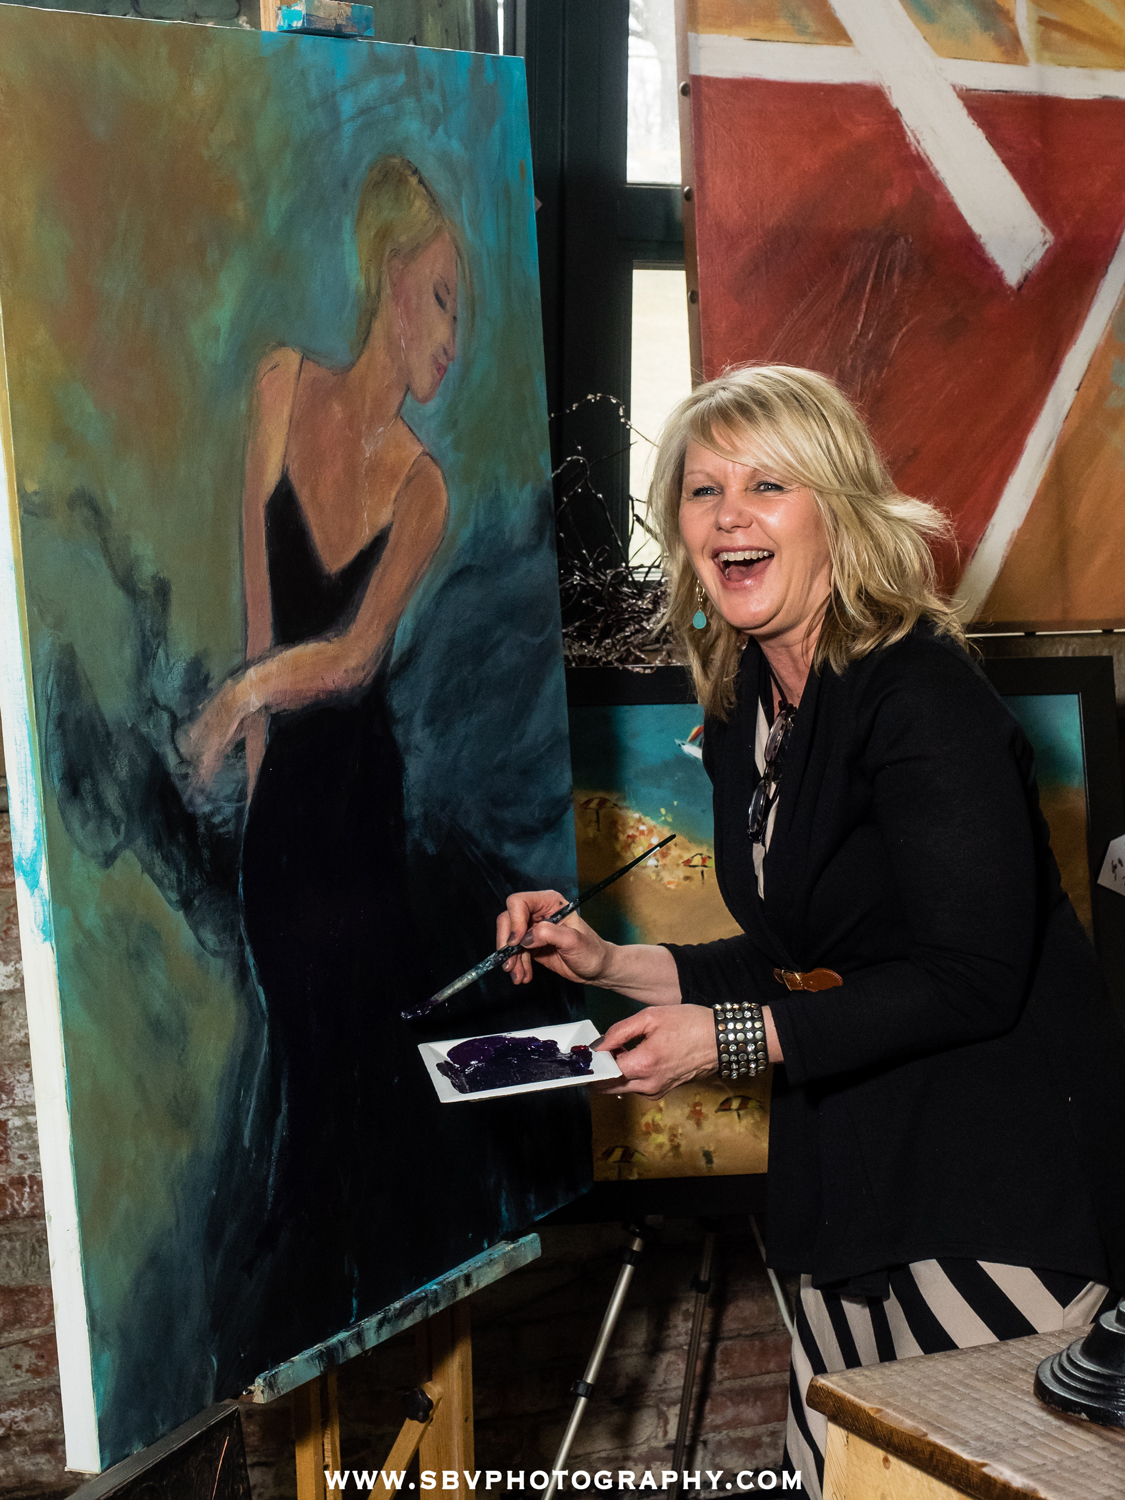 A live painter shares a laugh at the Hunt and Gather event in Crown Point.